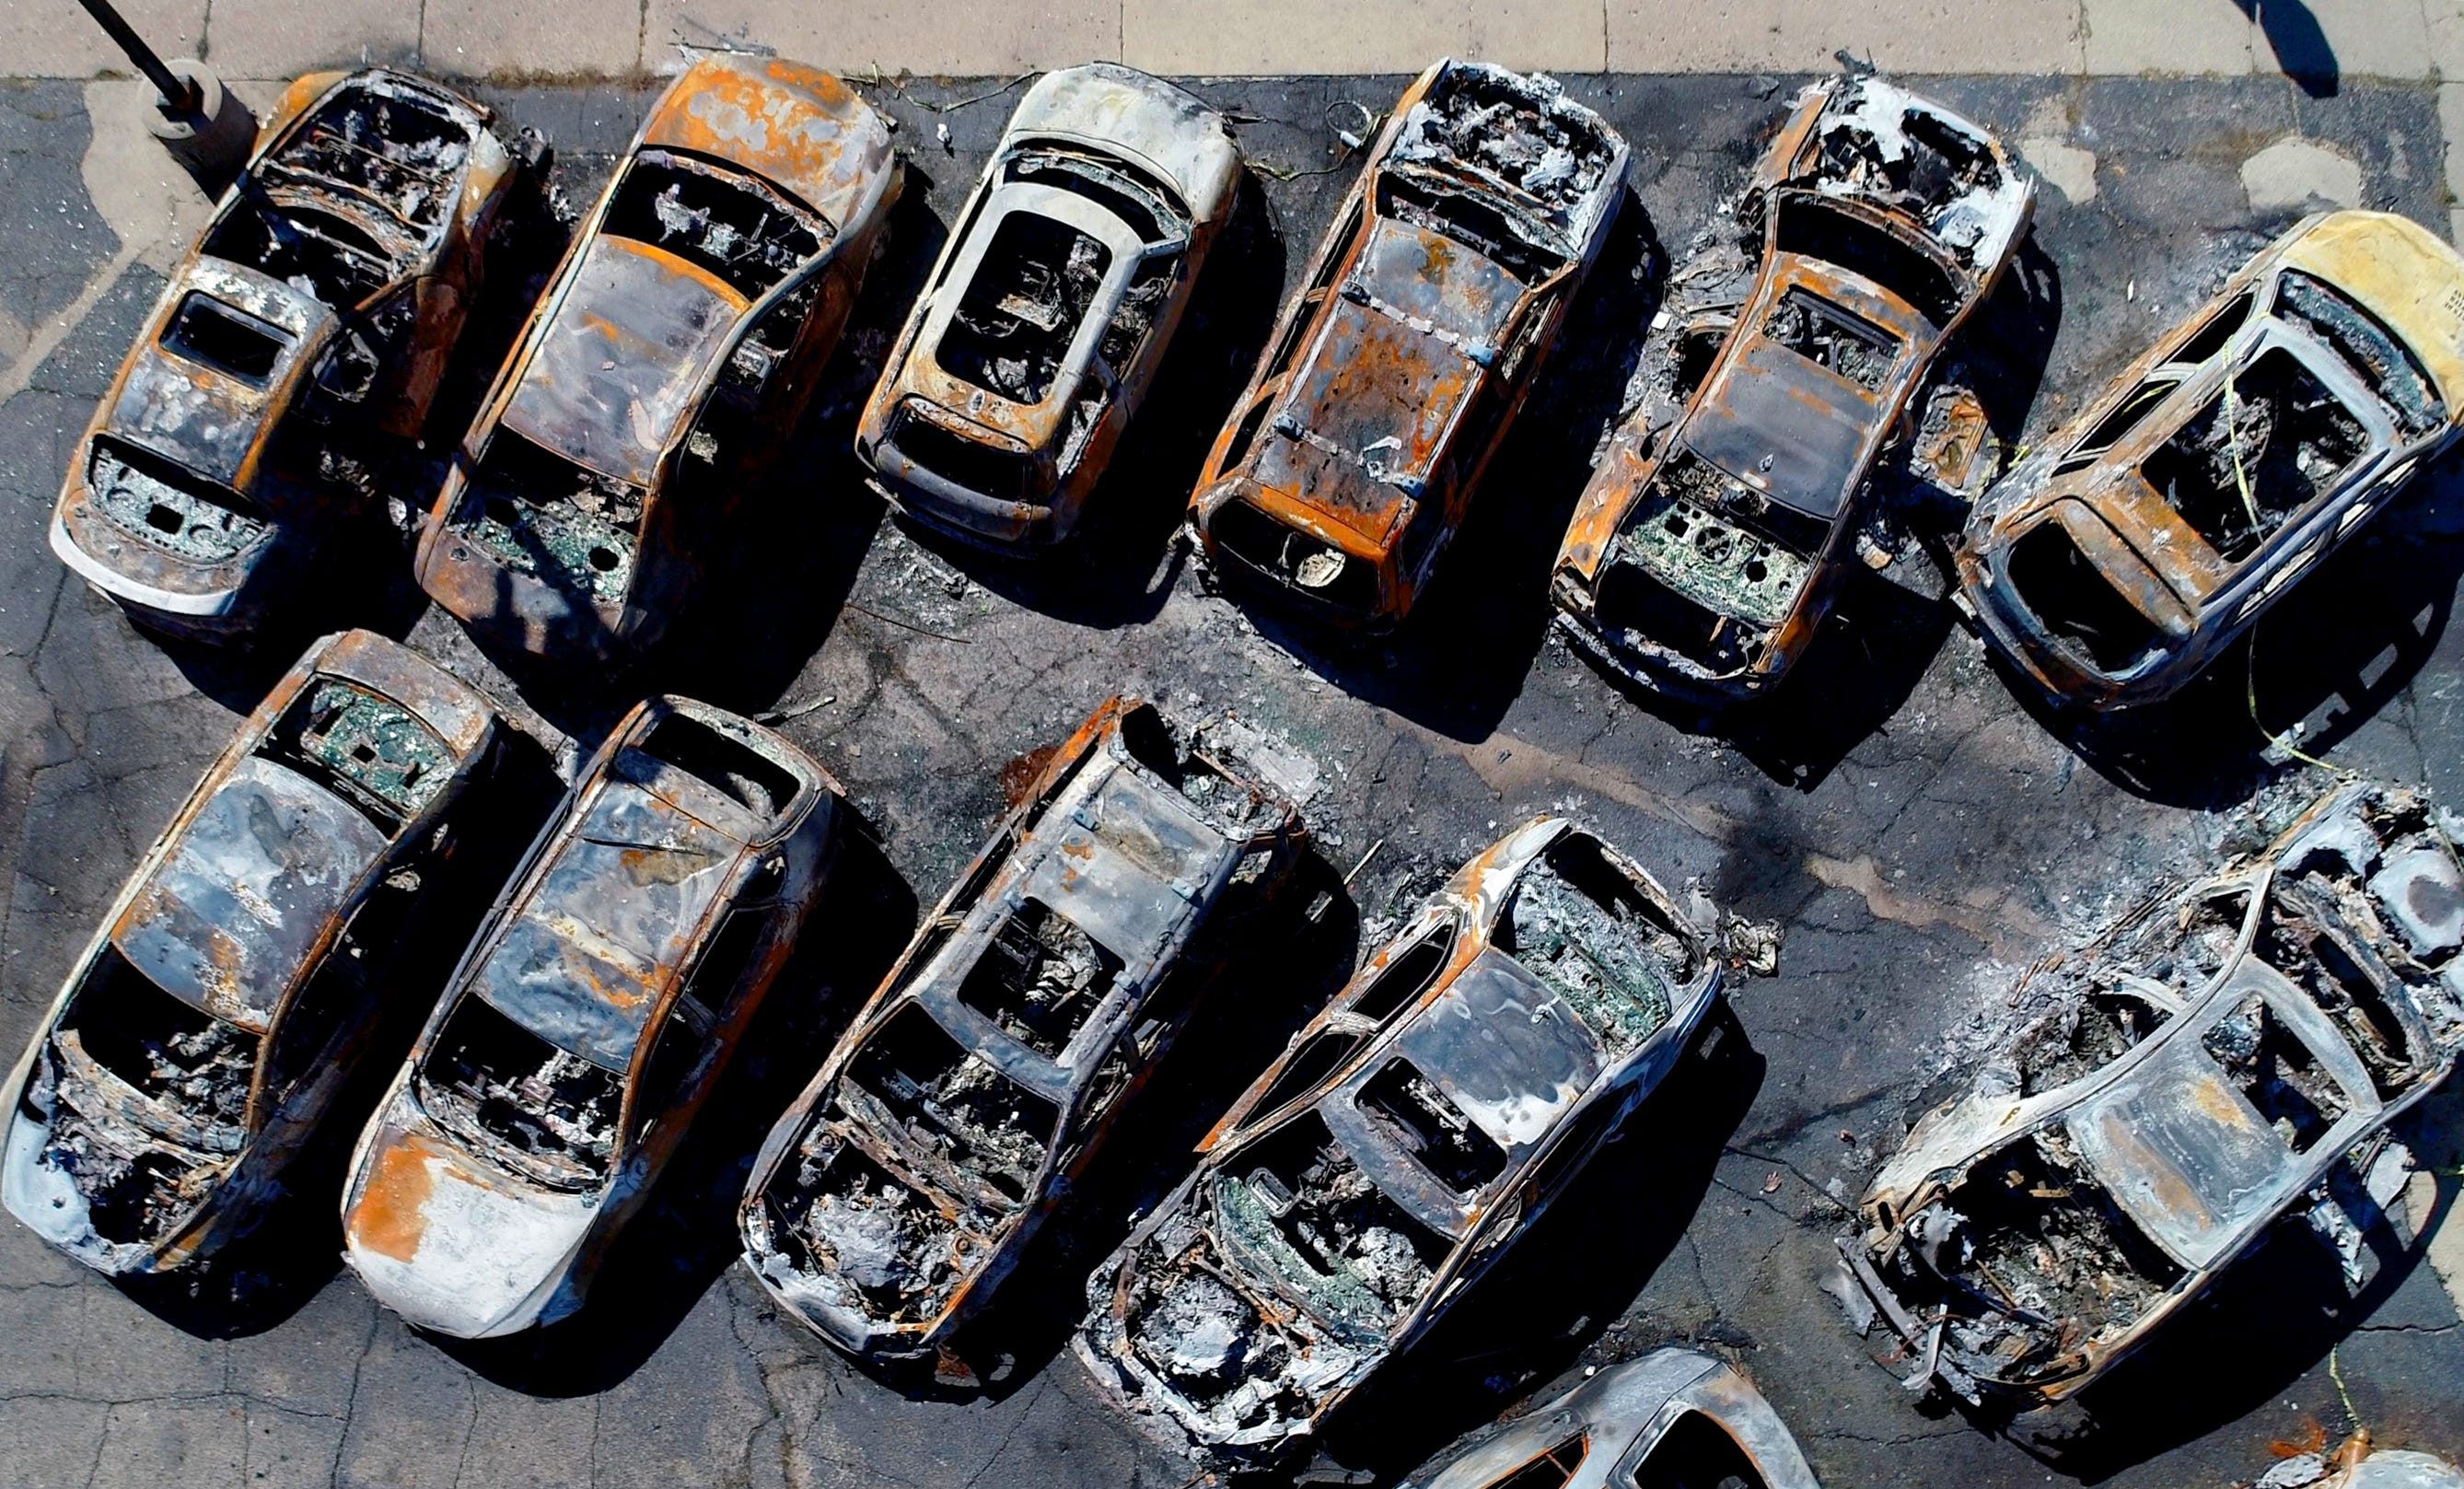 Vehicles sit destroyed after burning at Car Source on Sheridan Road, in Kenosha September 2, 2020. The destruction came as the aftermath consecutive nights of violent protests following of the shooting of Jacob Blake.